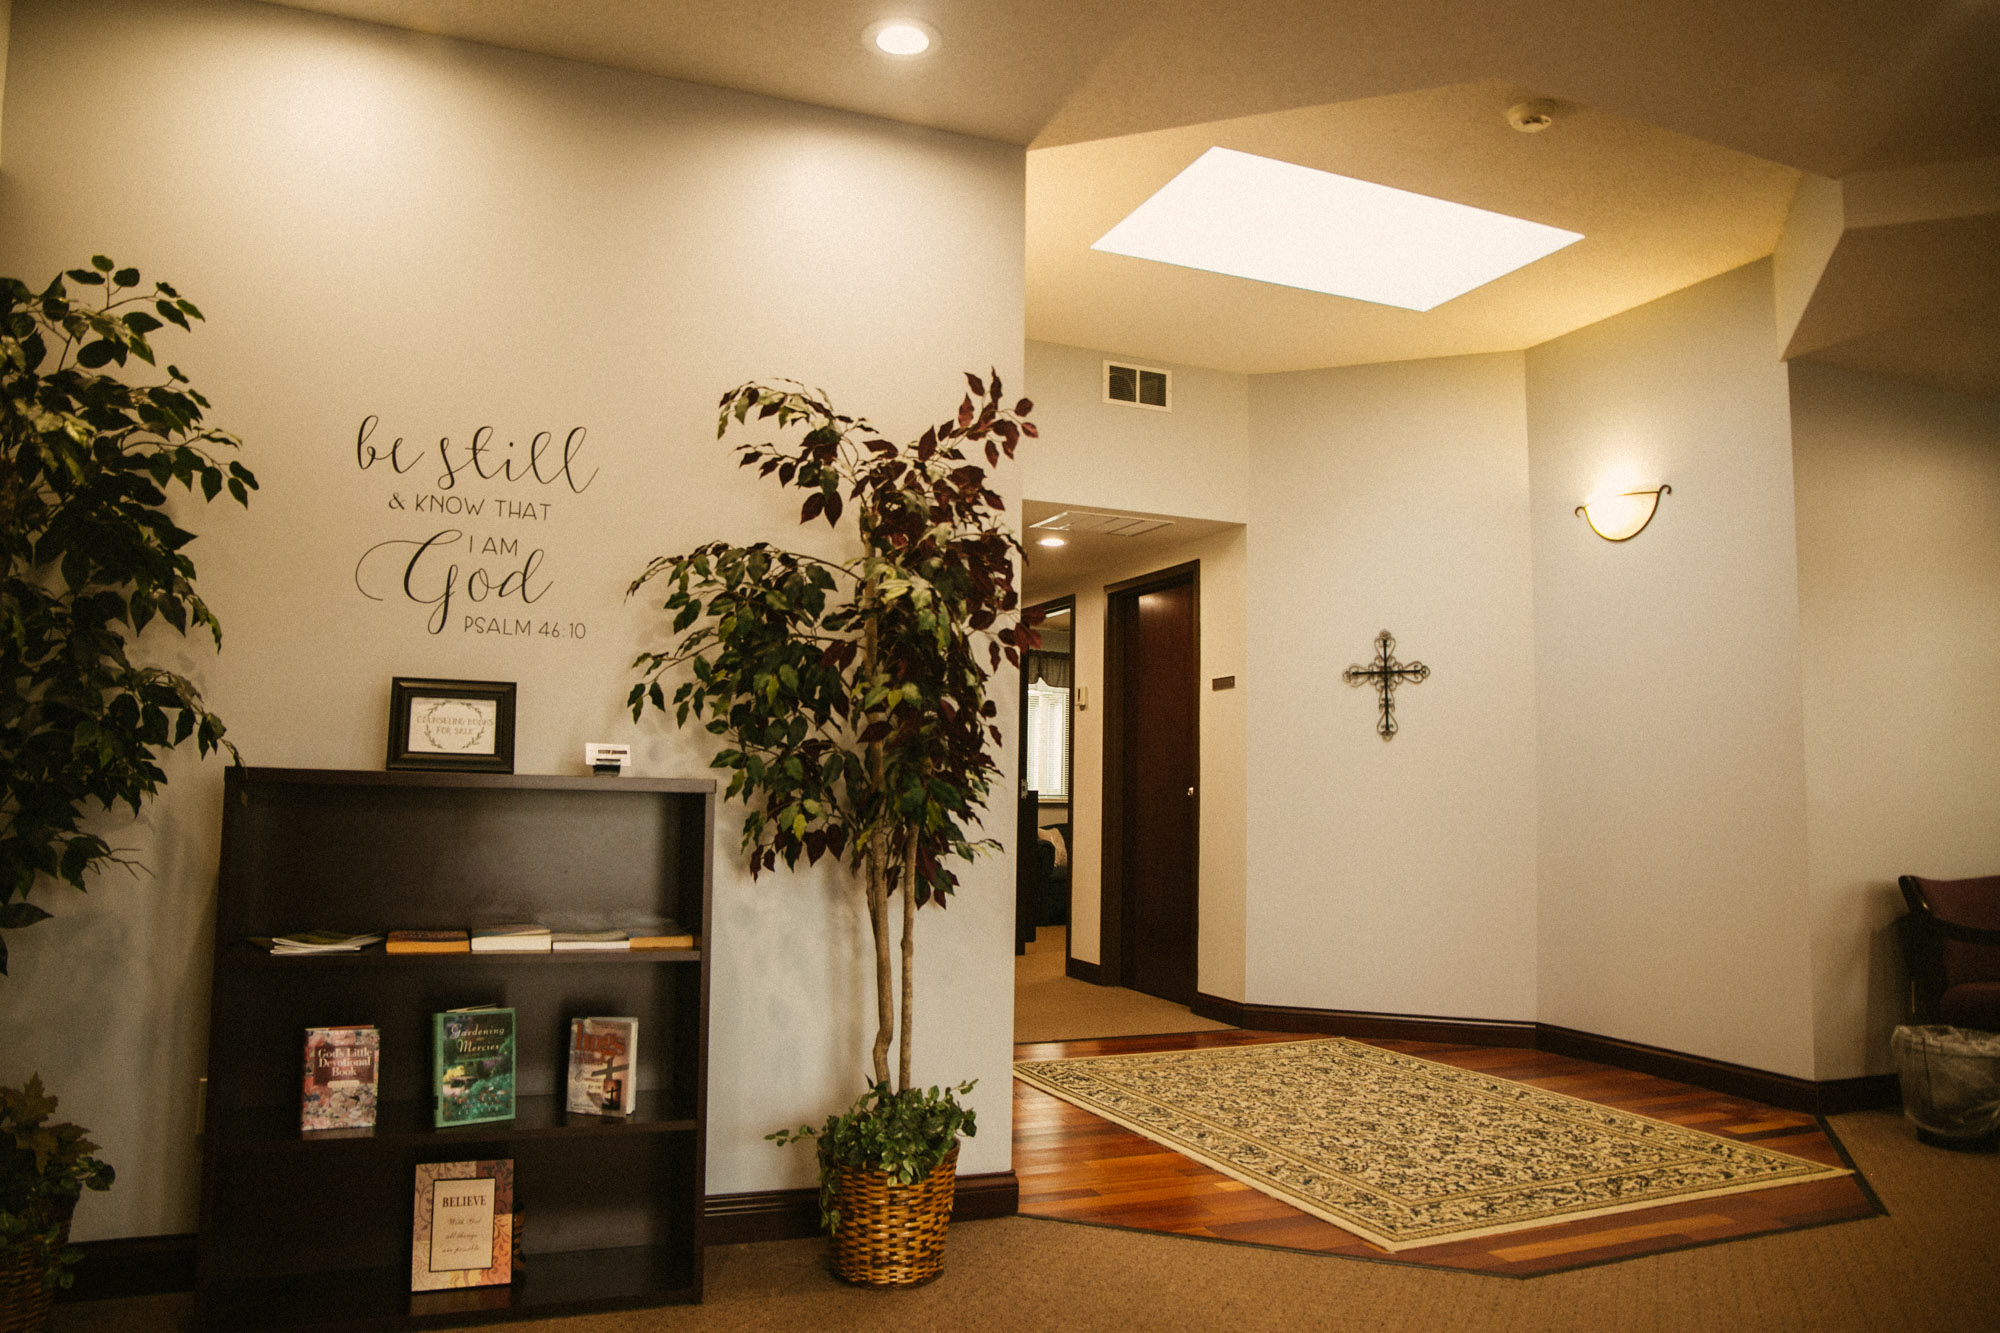 A warm, inviting hallway and lobby area